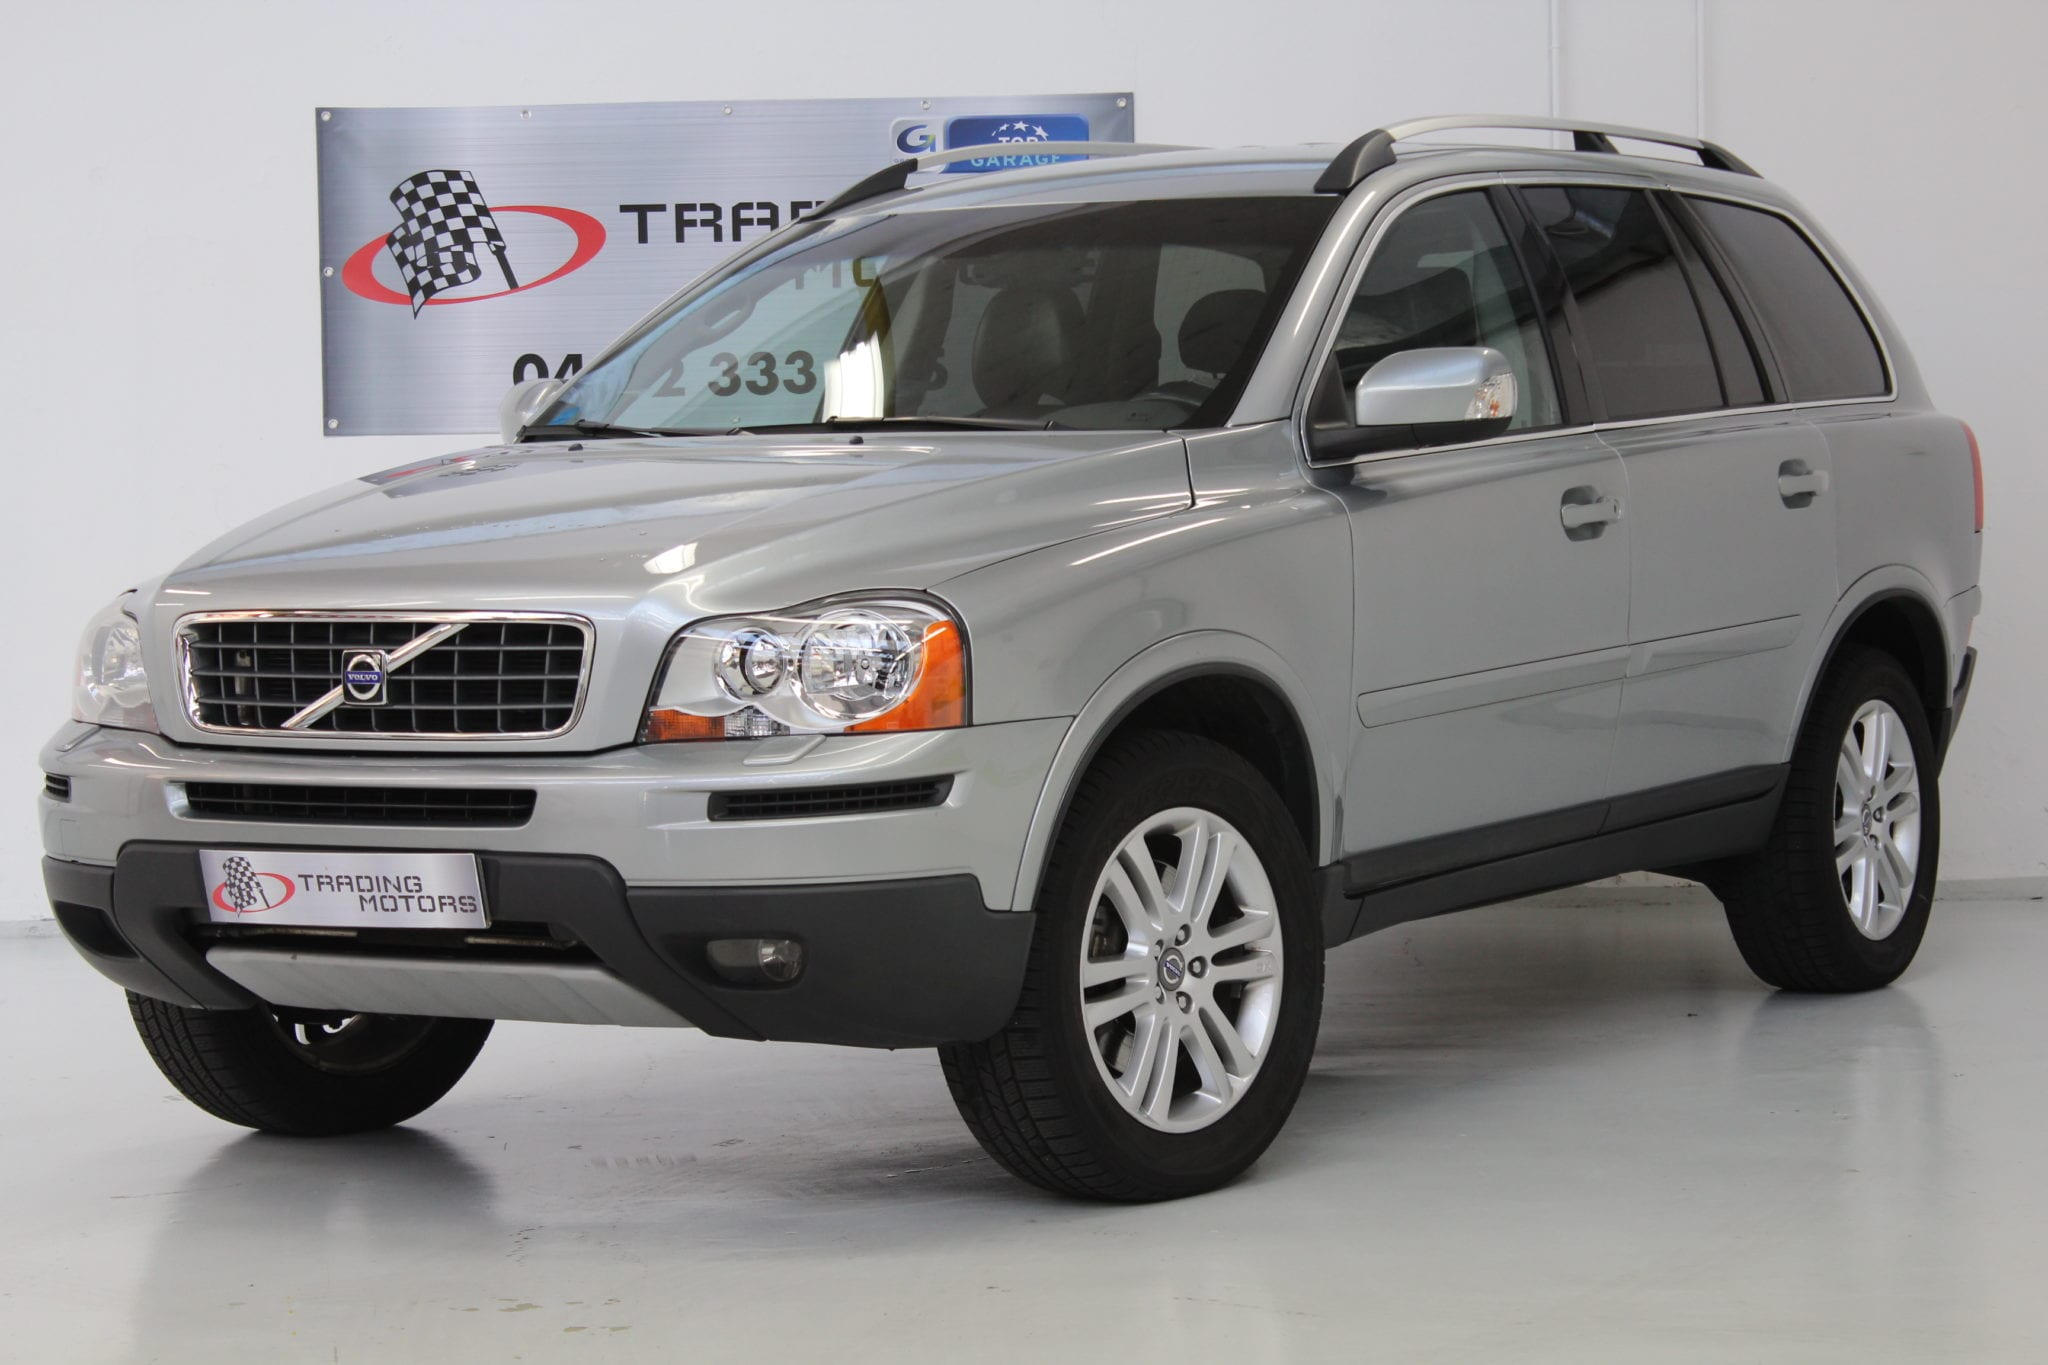 volvo XC90 2.5D 7 places - Image 1